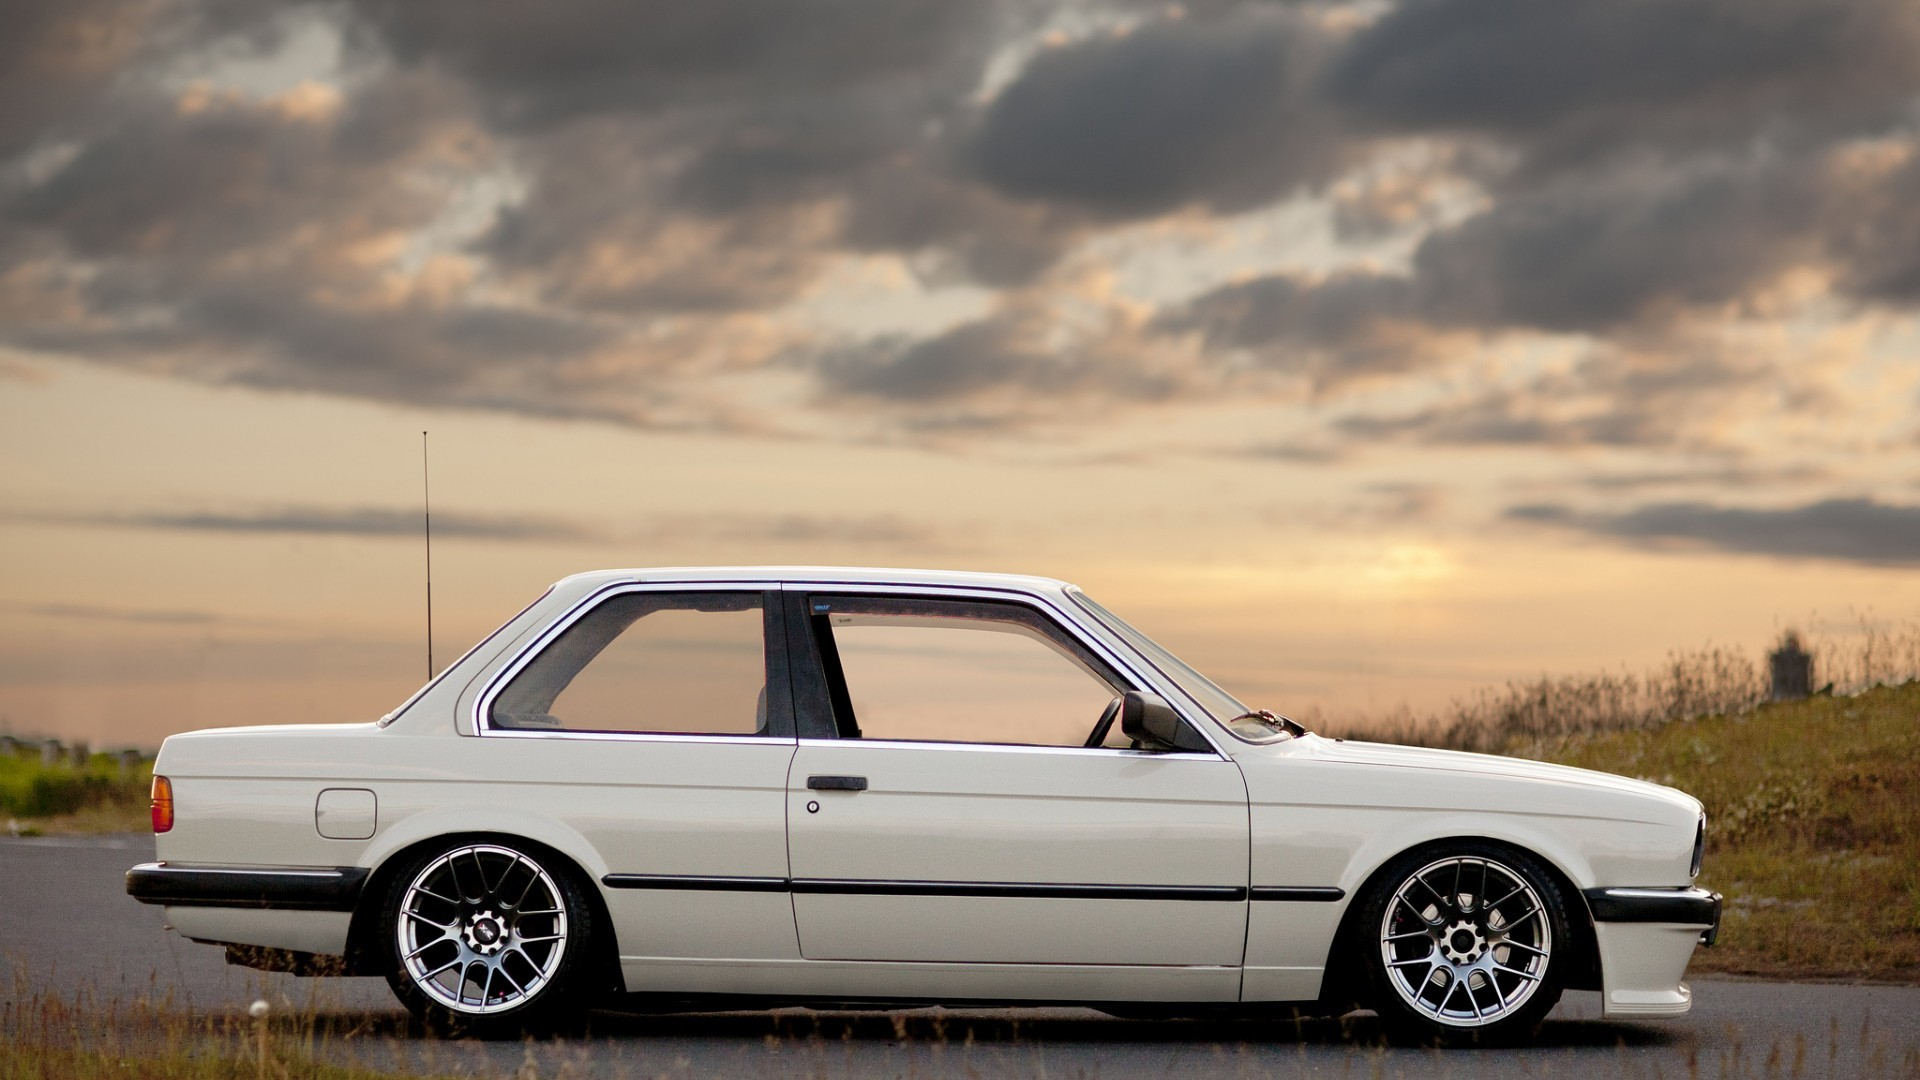 Bmw E30 Full HD Background https://wallpapers-and-backgrounds.net